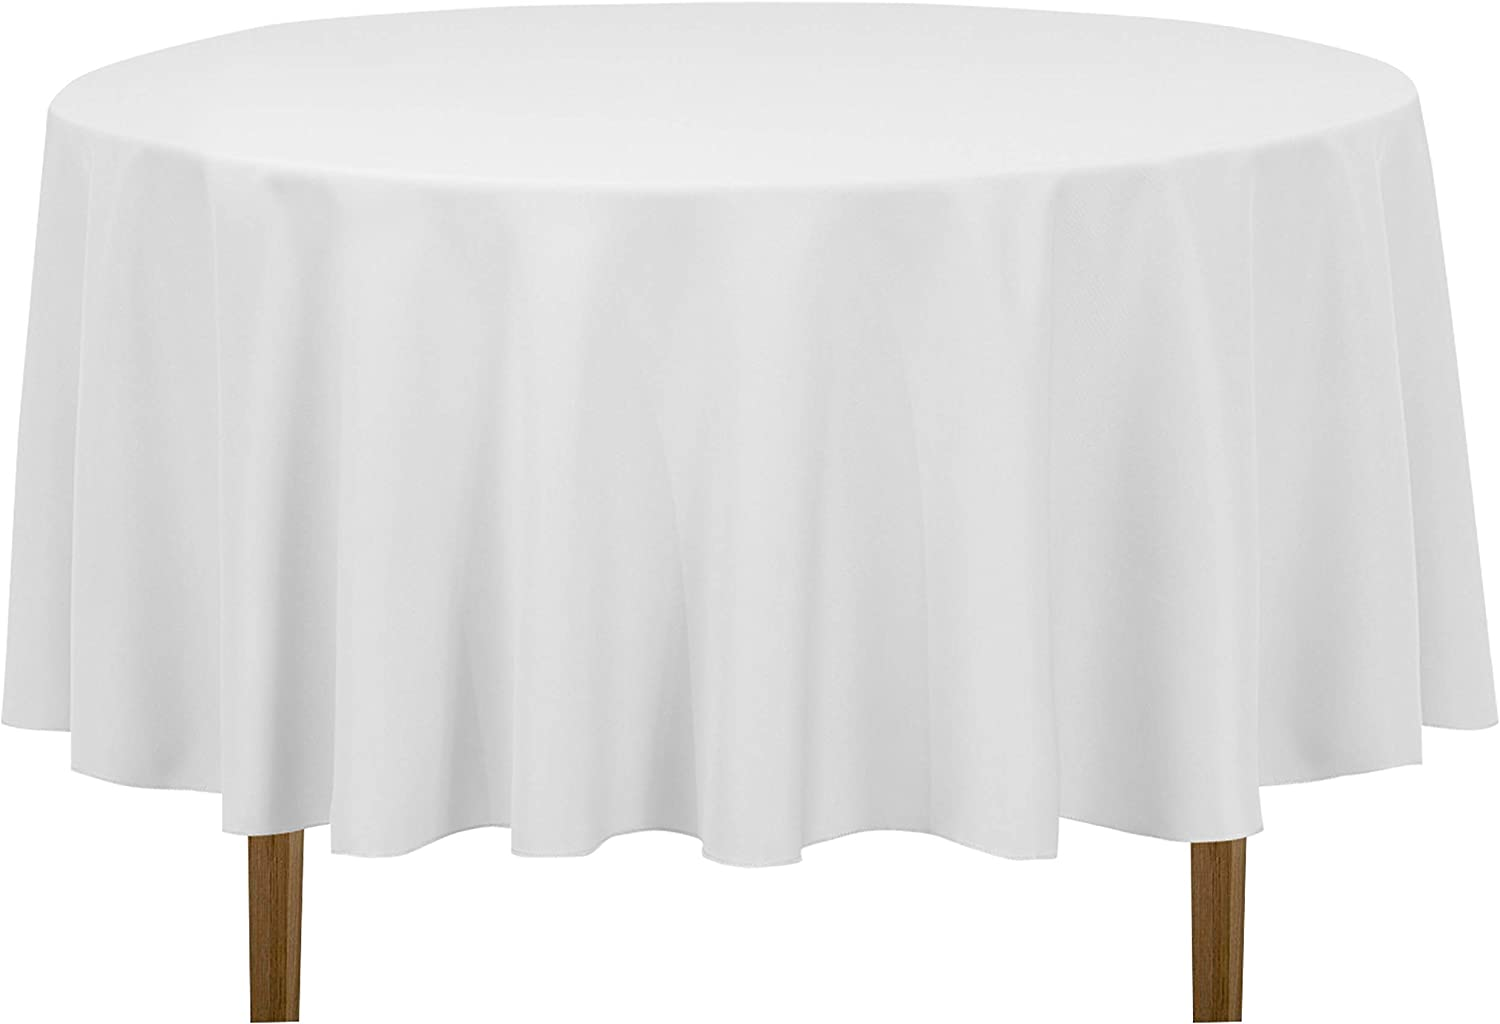 Amazon Com Linentablecloth 90 Inch Round Polyester Tablecloth White Home Kitchen